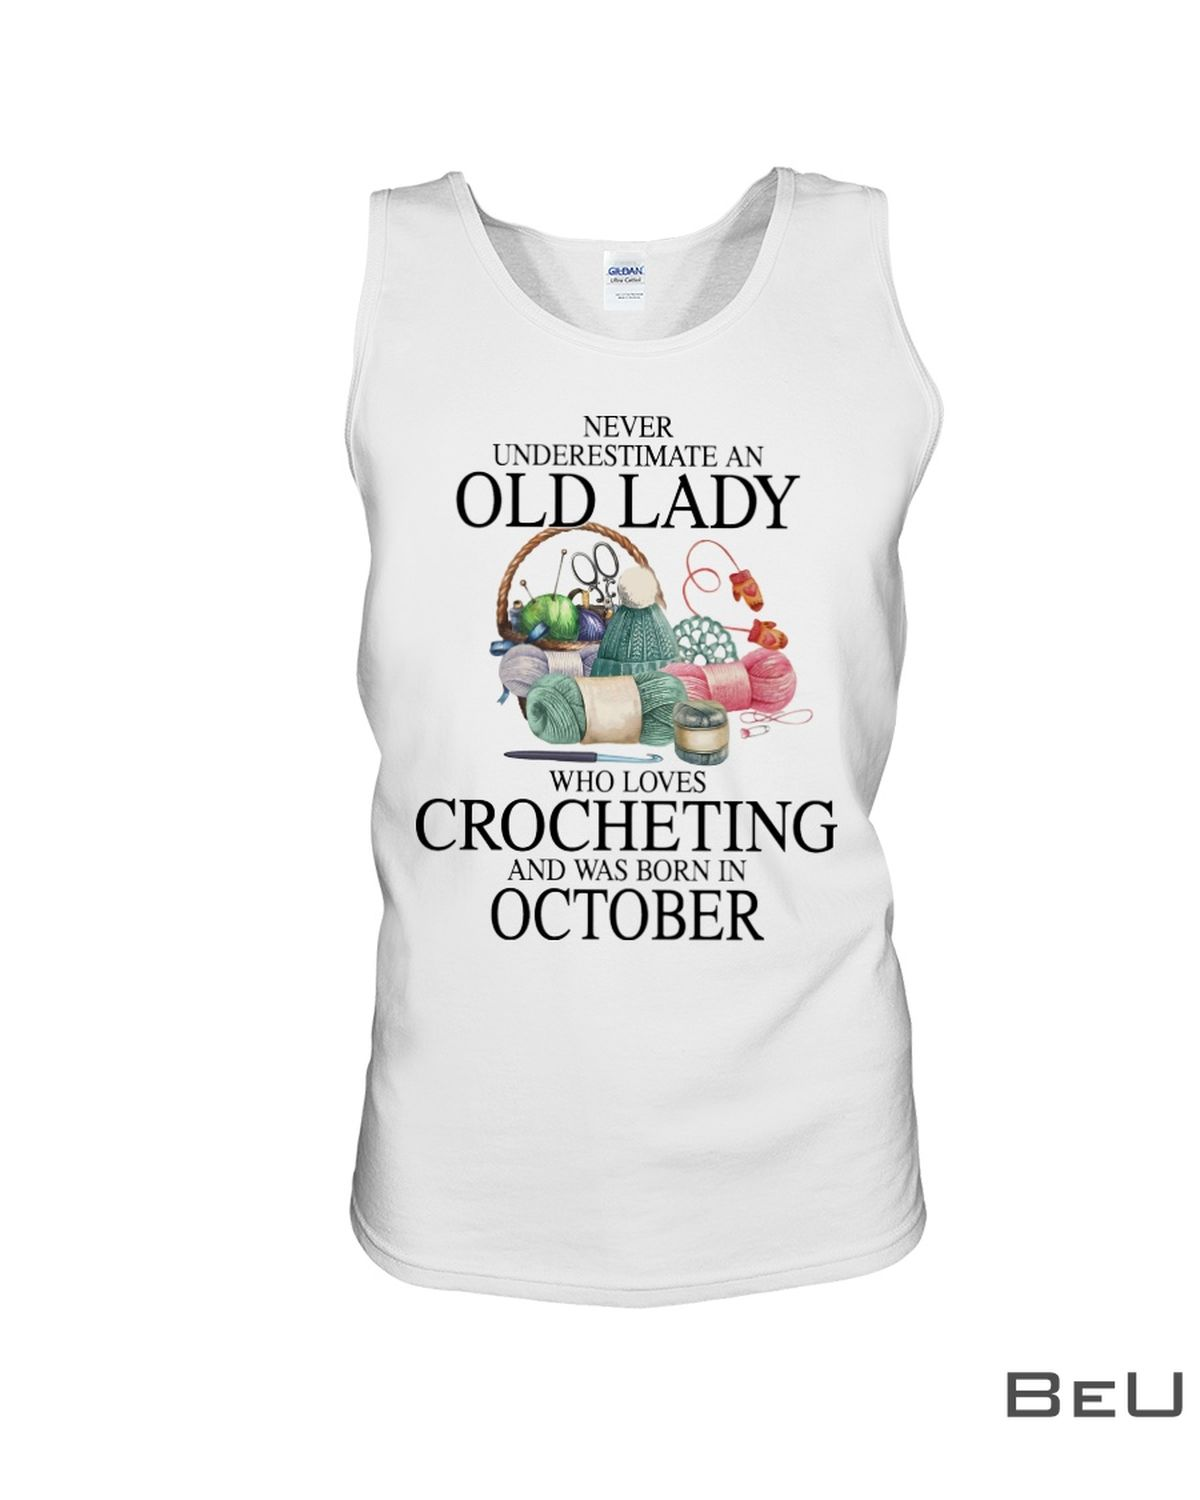 Never underestimate an old lady who loves Crocheting and was born in October shirtc